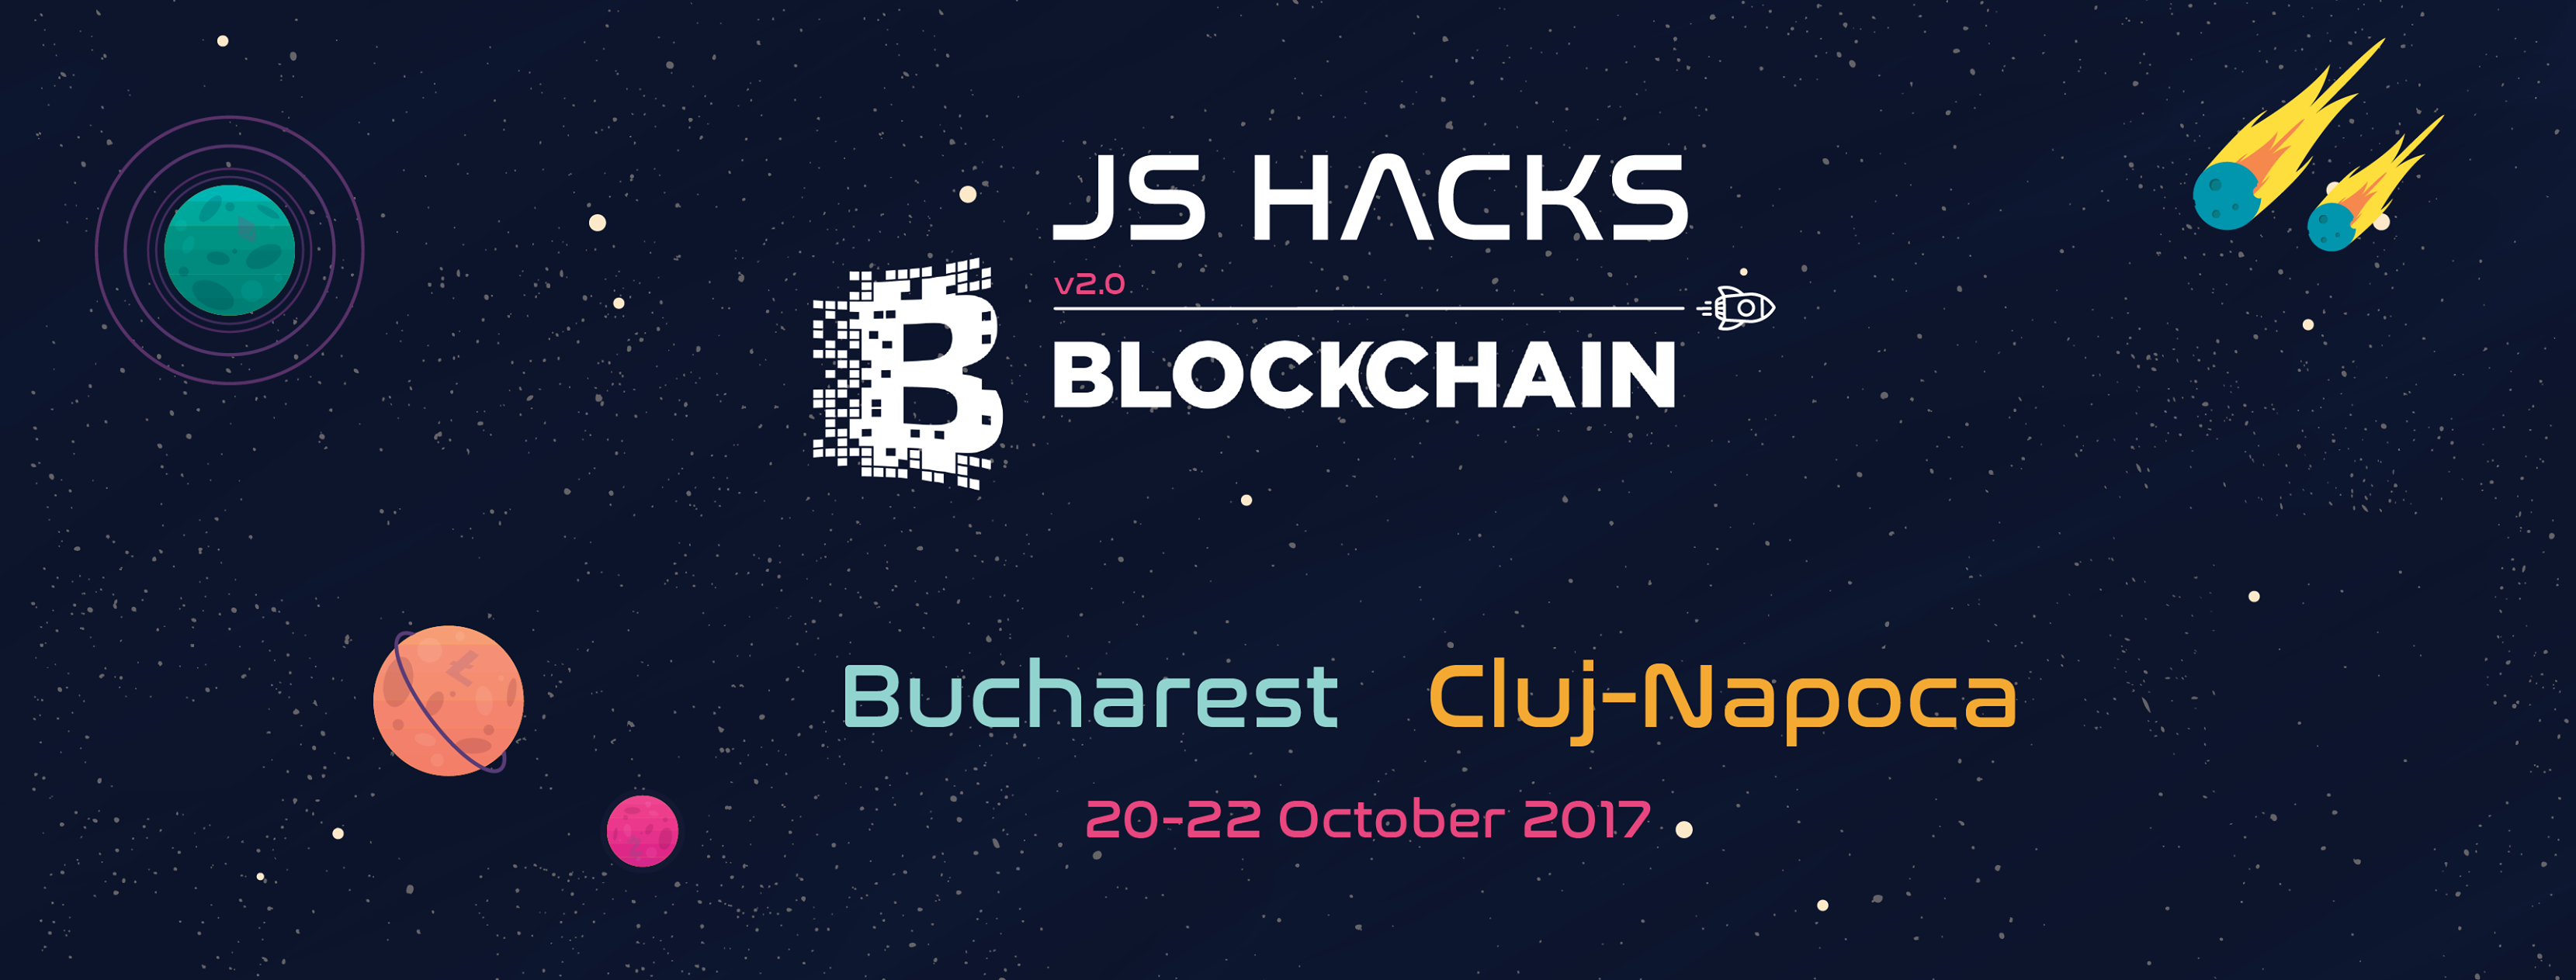 JSHacks2017_TheBlockchainEdition